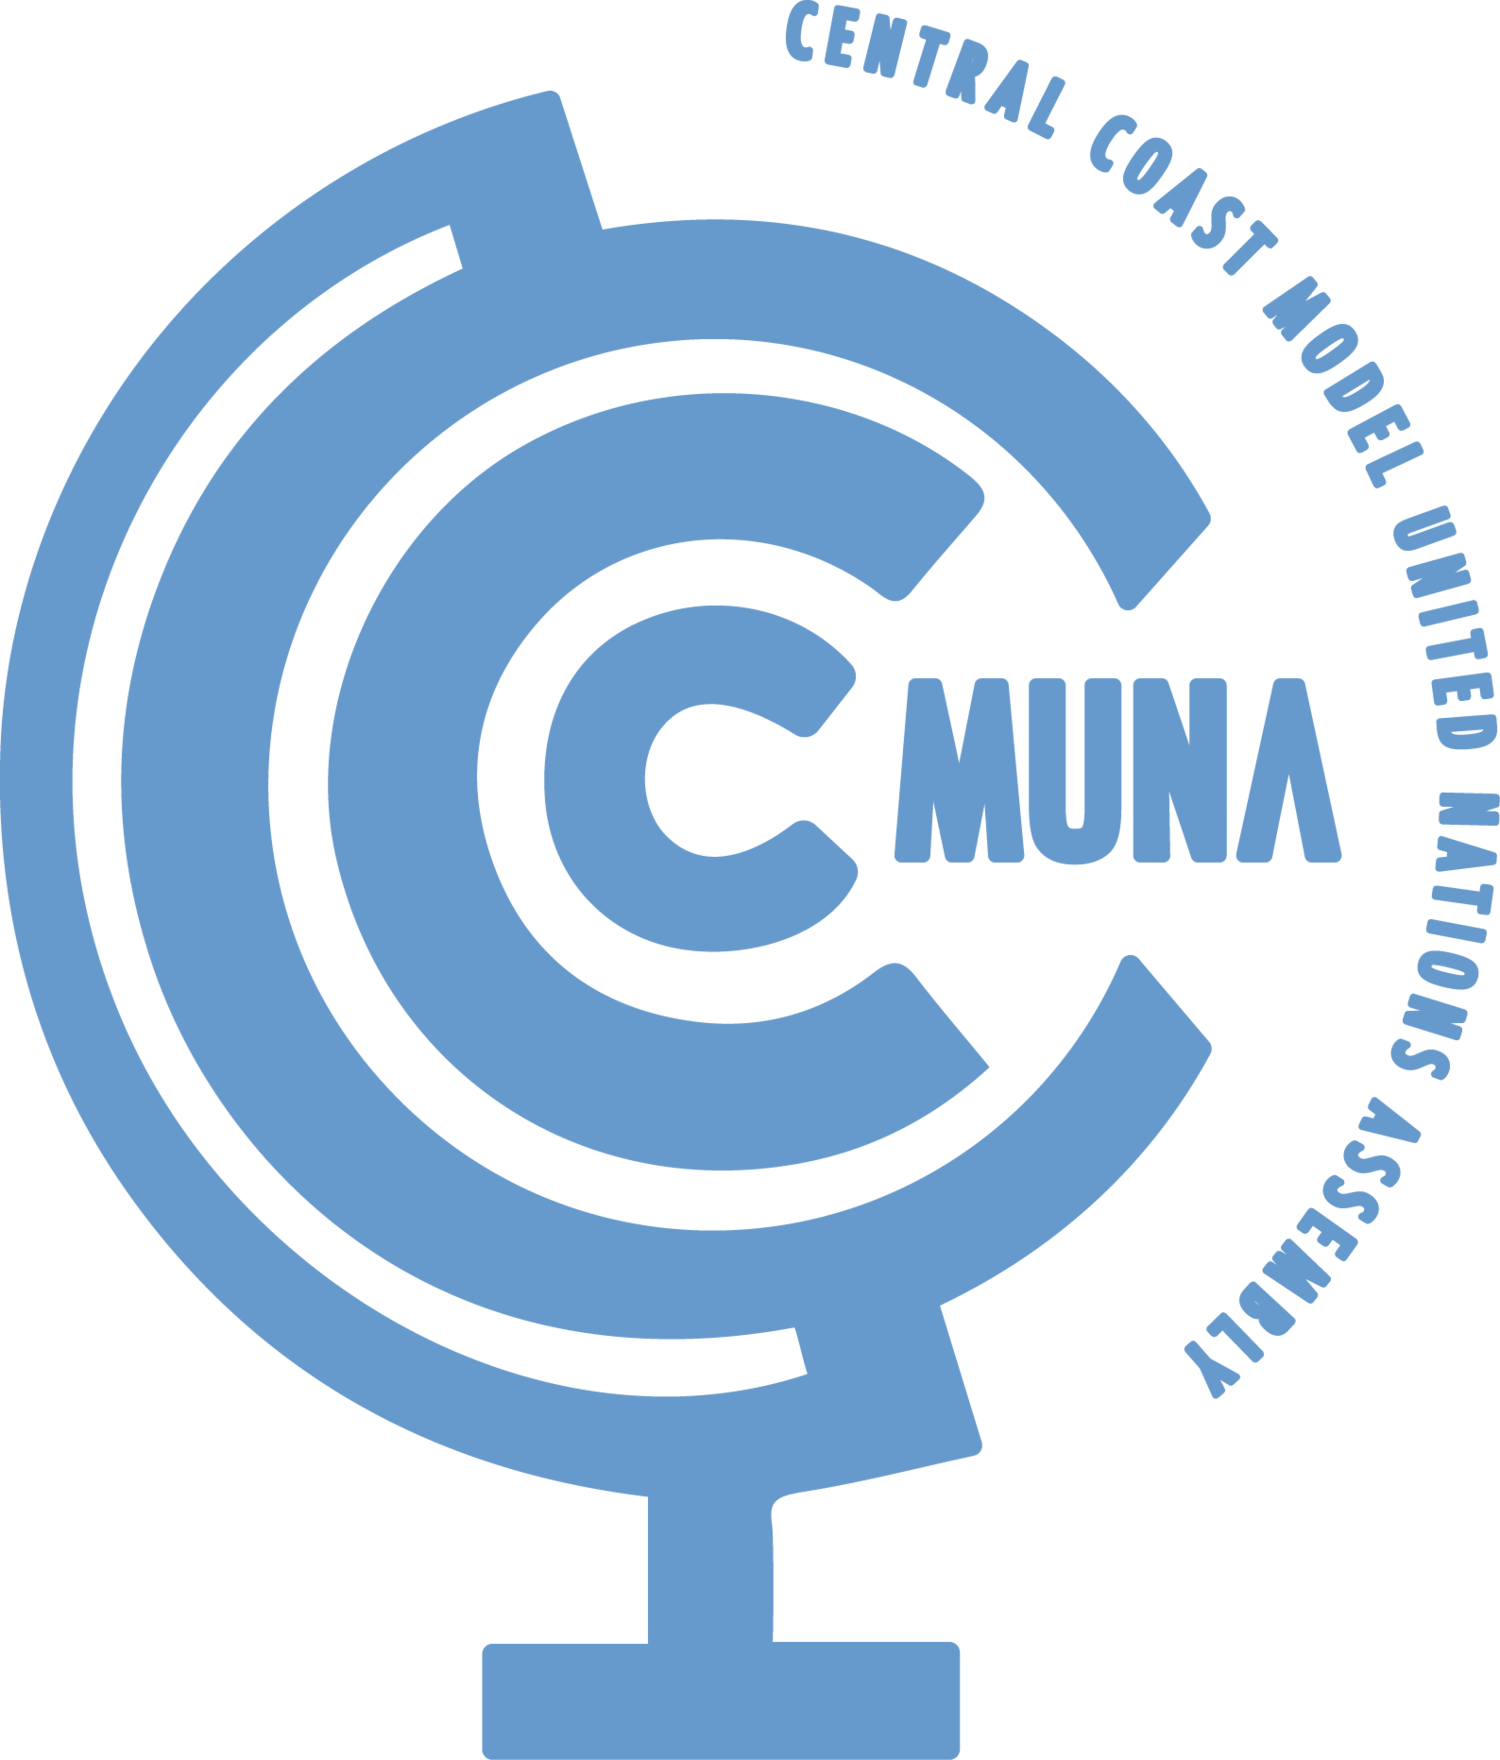 Central Coast Model United Nations Assembly